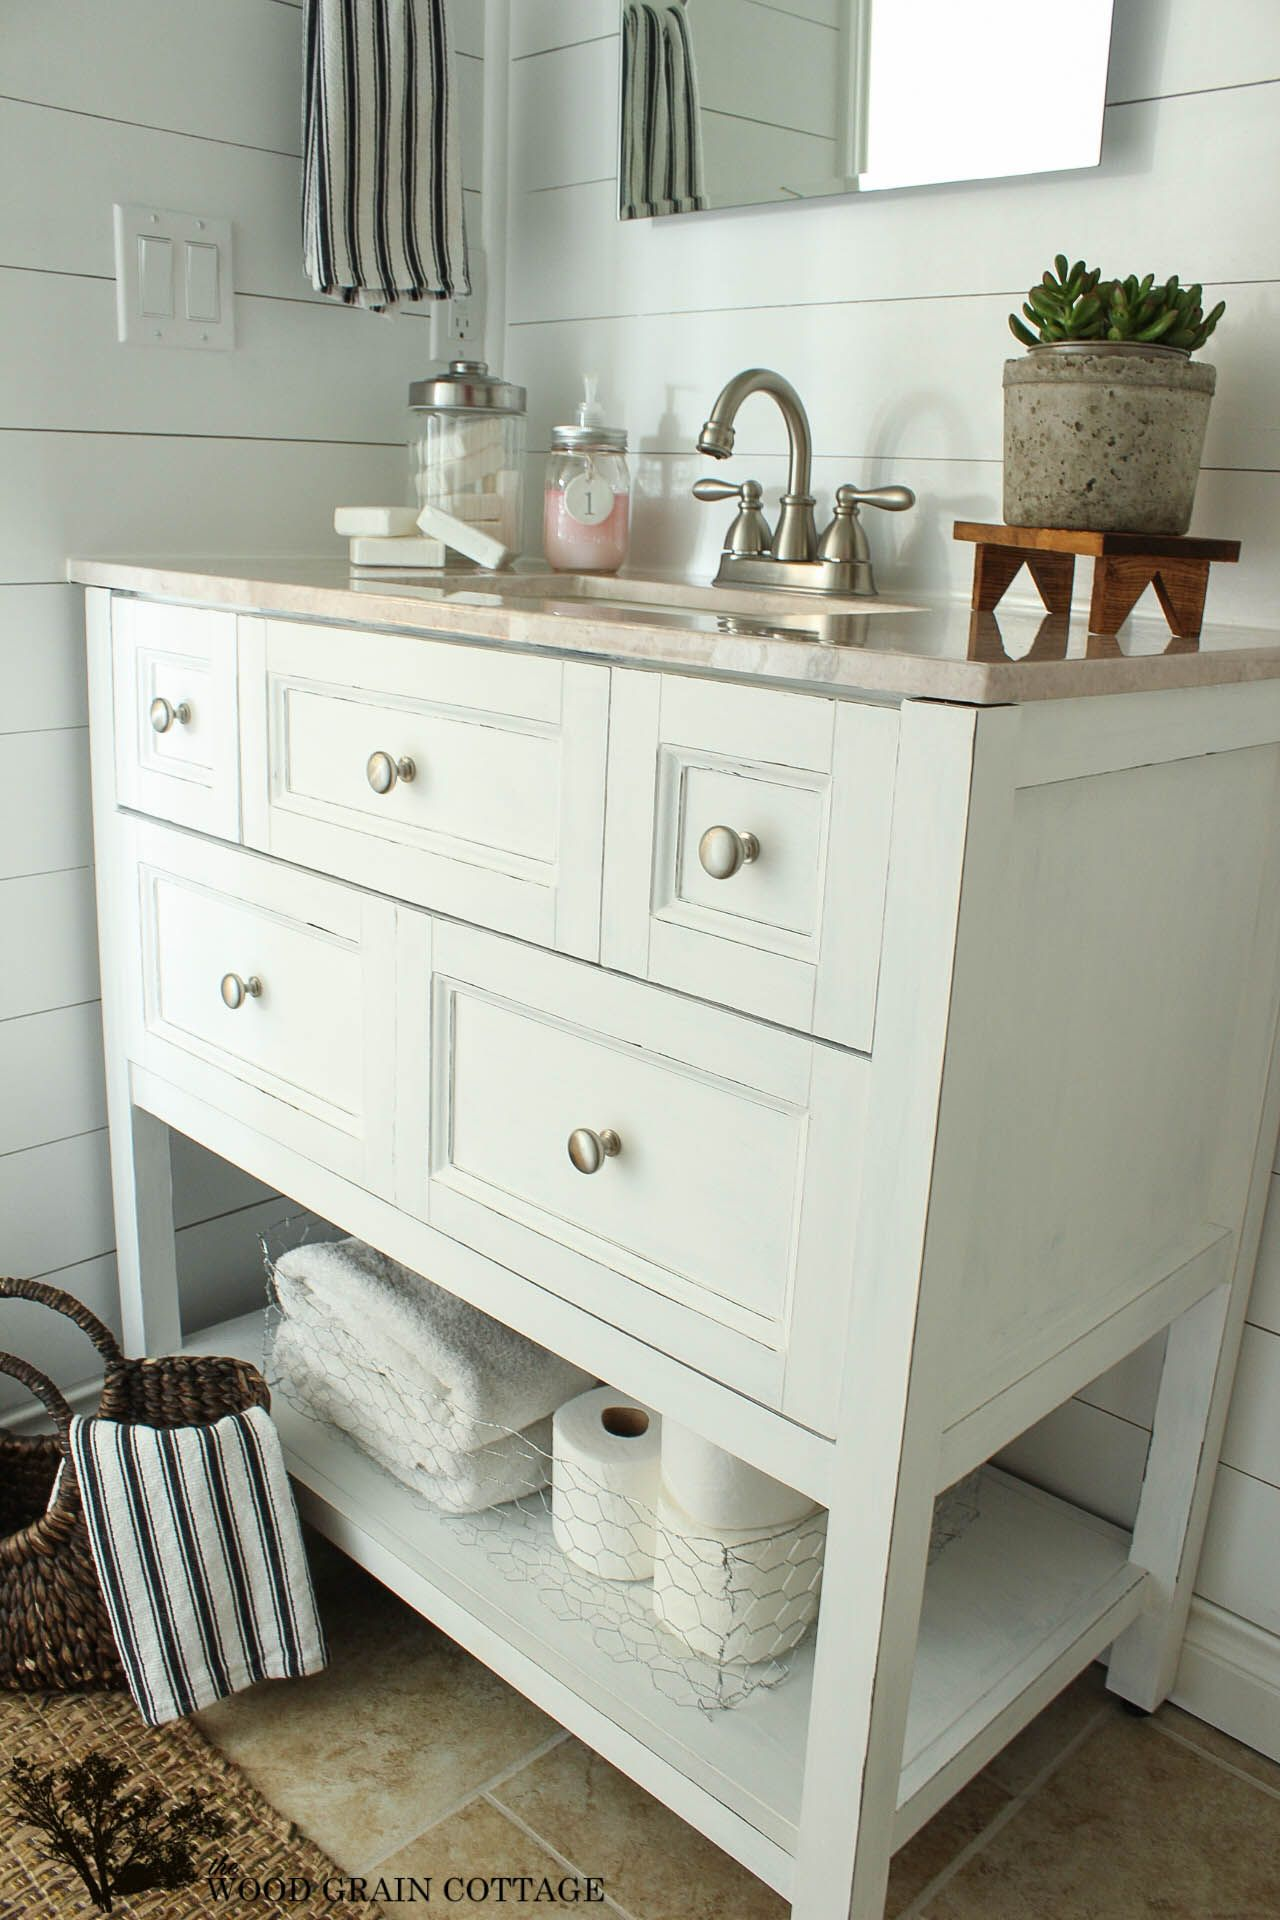 Powder Bathroom Vanity Makeover | Bathroom | Pinterest | Open ...